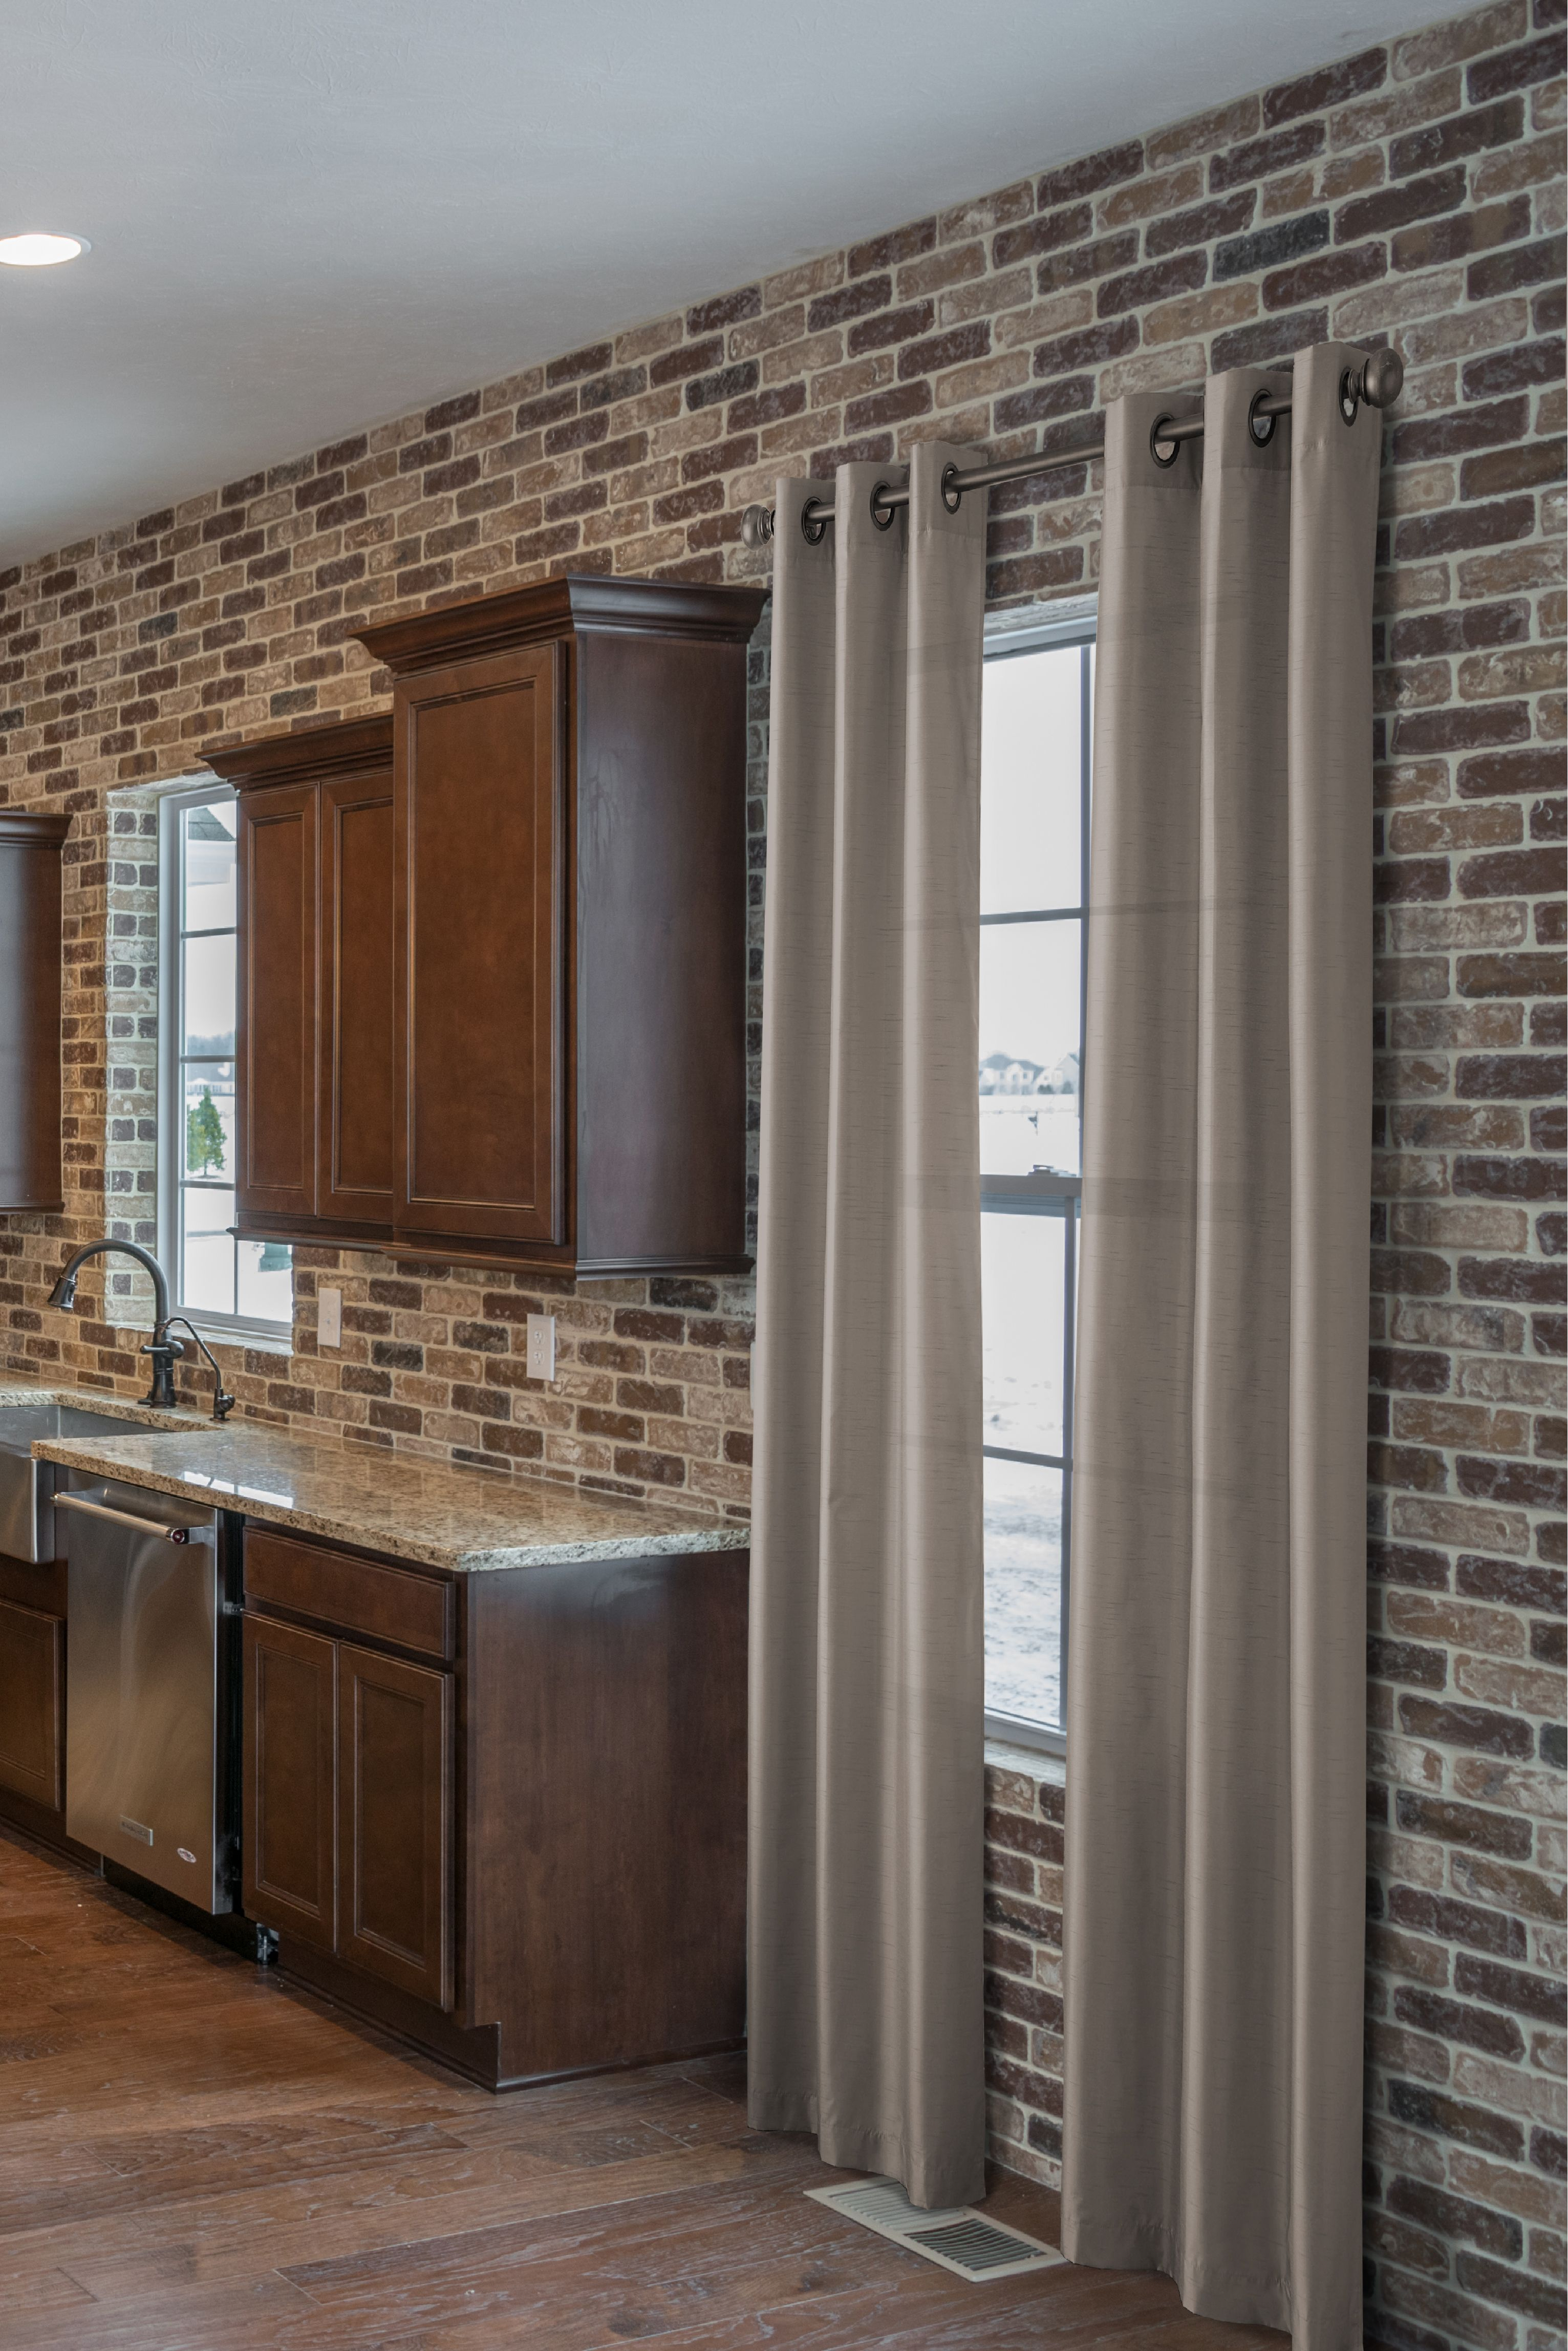 Embarcadero Thin Brick Made By Mcnear This Homeowner Went With